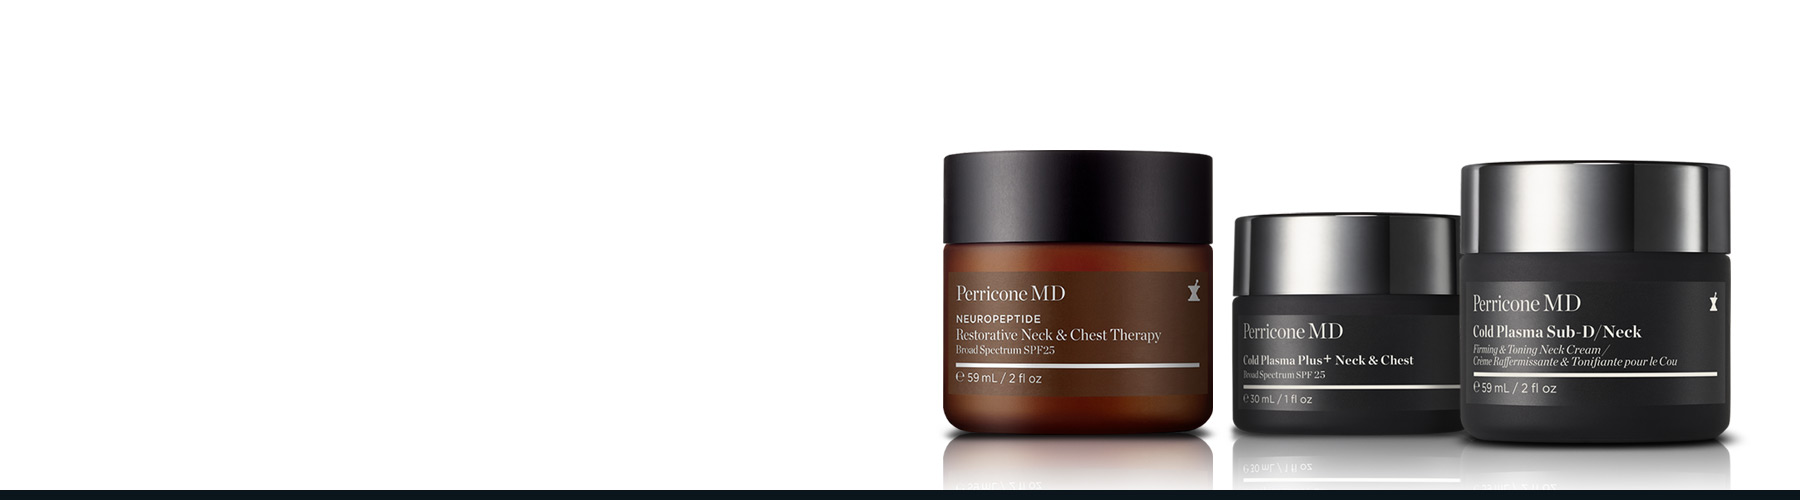 Neck Treatments Perricone MD